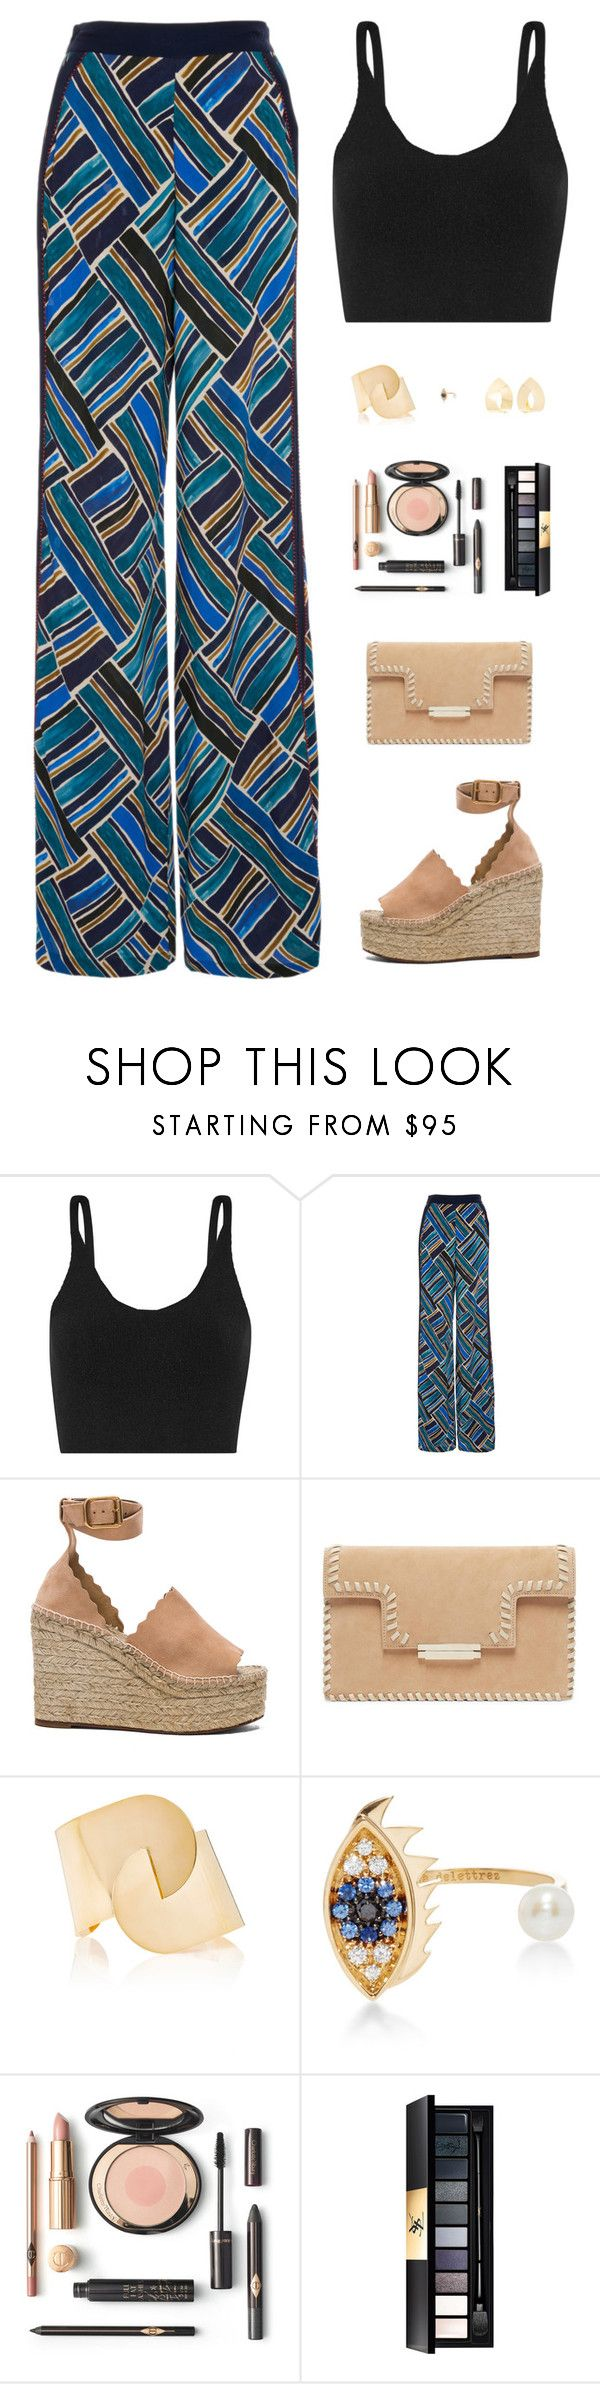 """""""Untitled #4961"""" by mdmsb on Polyvore featuring TIBI, Talitha, Chloé, Delfina Delettrez and Yves Saint Laurent"""